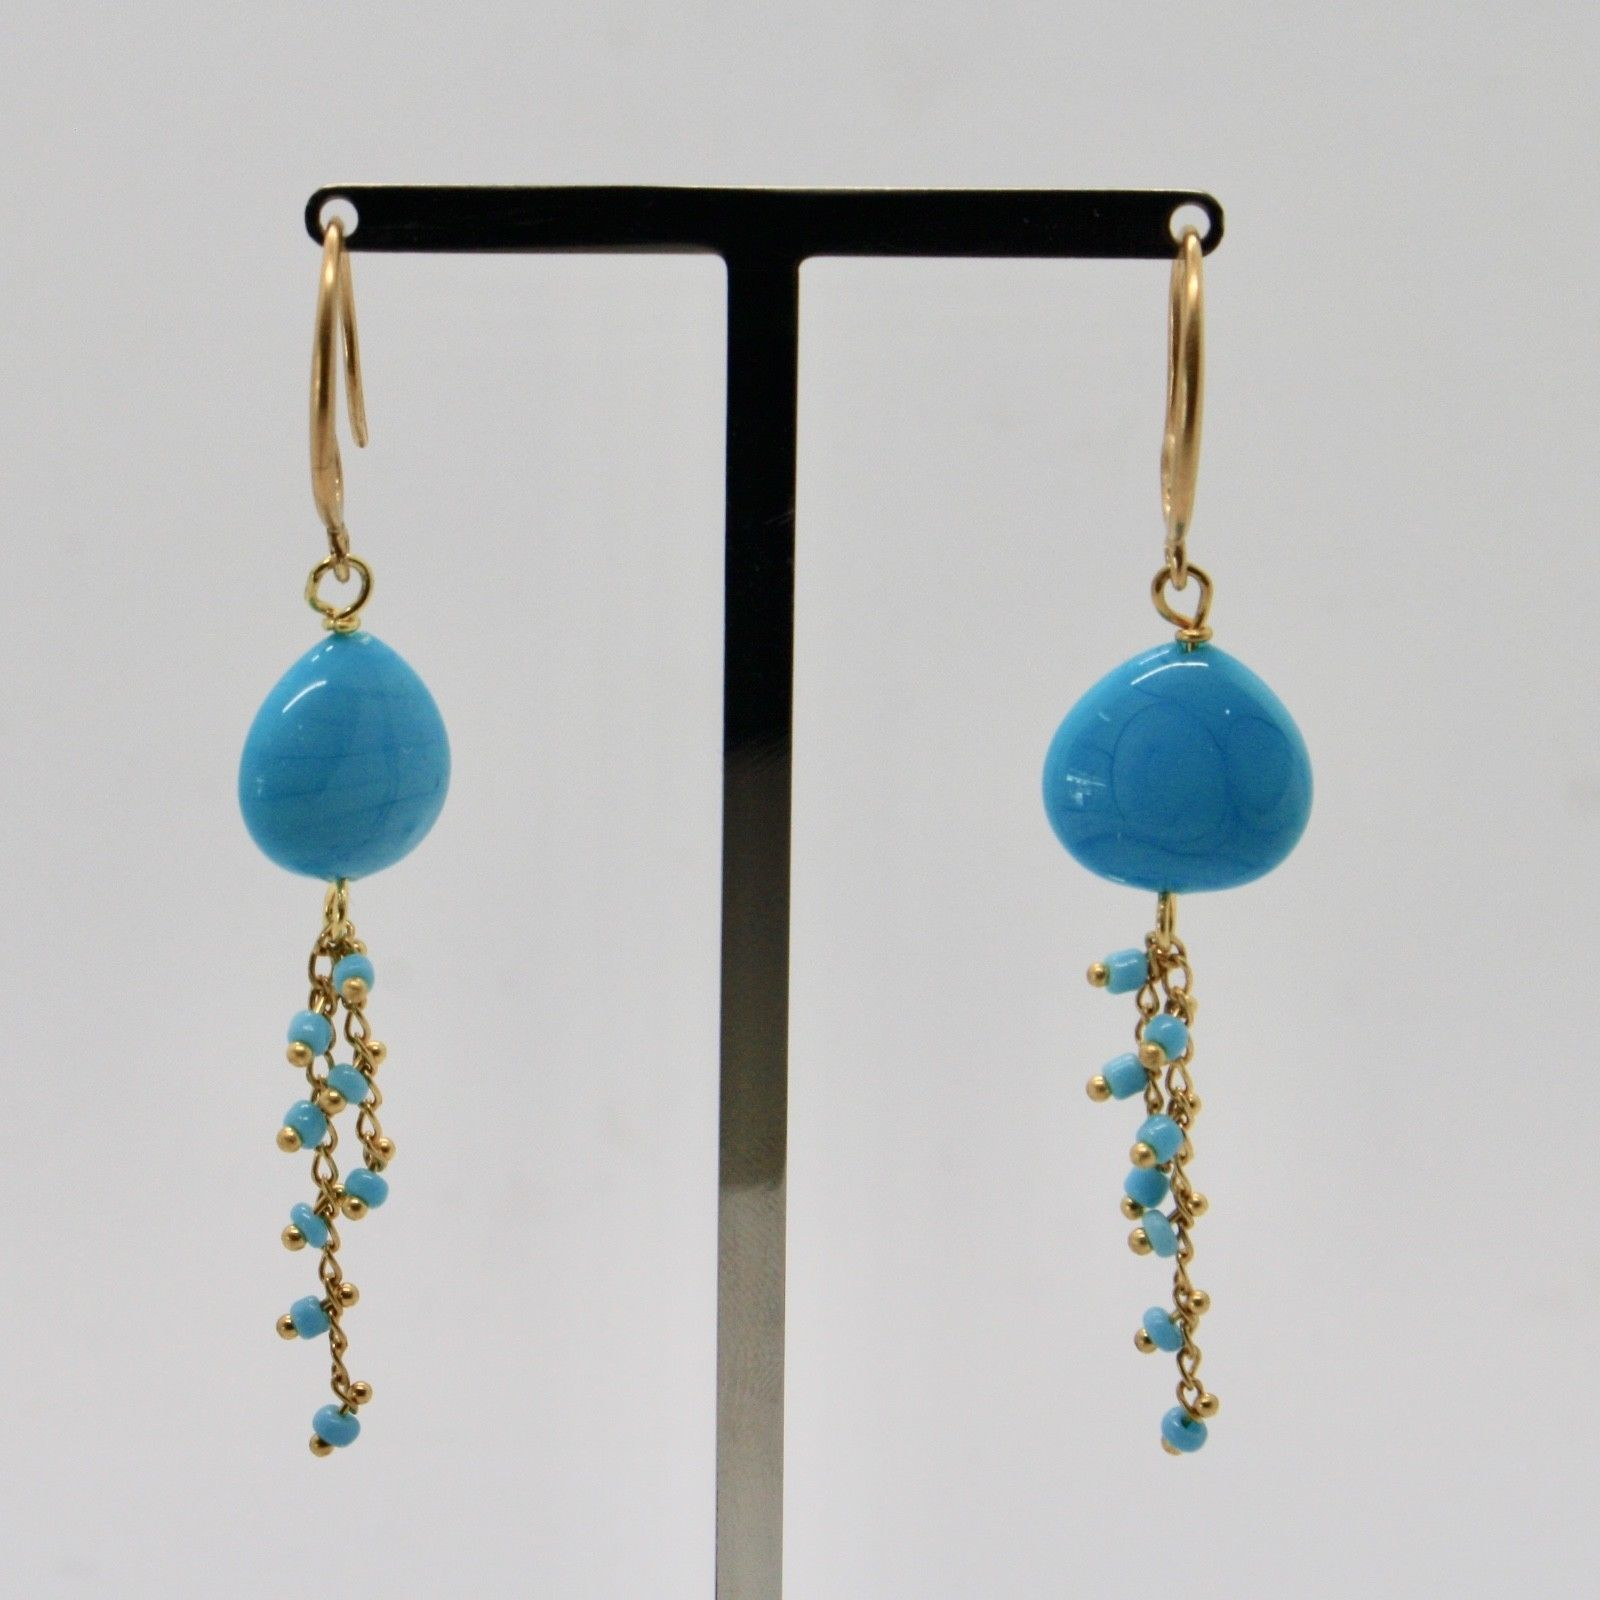 EARRINGS ANTICA MURRINA VENEZIA WITH MURANO GLASS TURQUOISE GOLD BLUE OR570A07